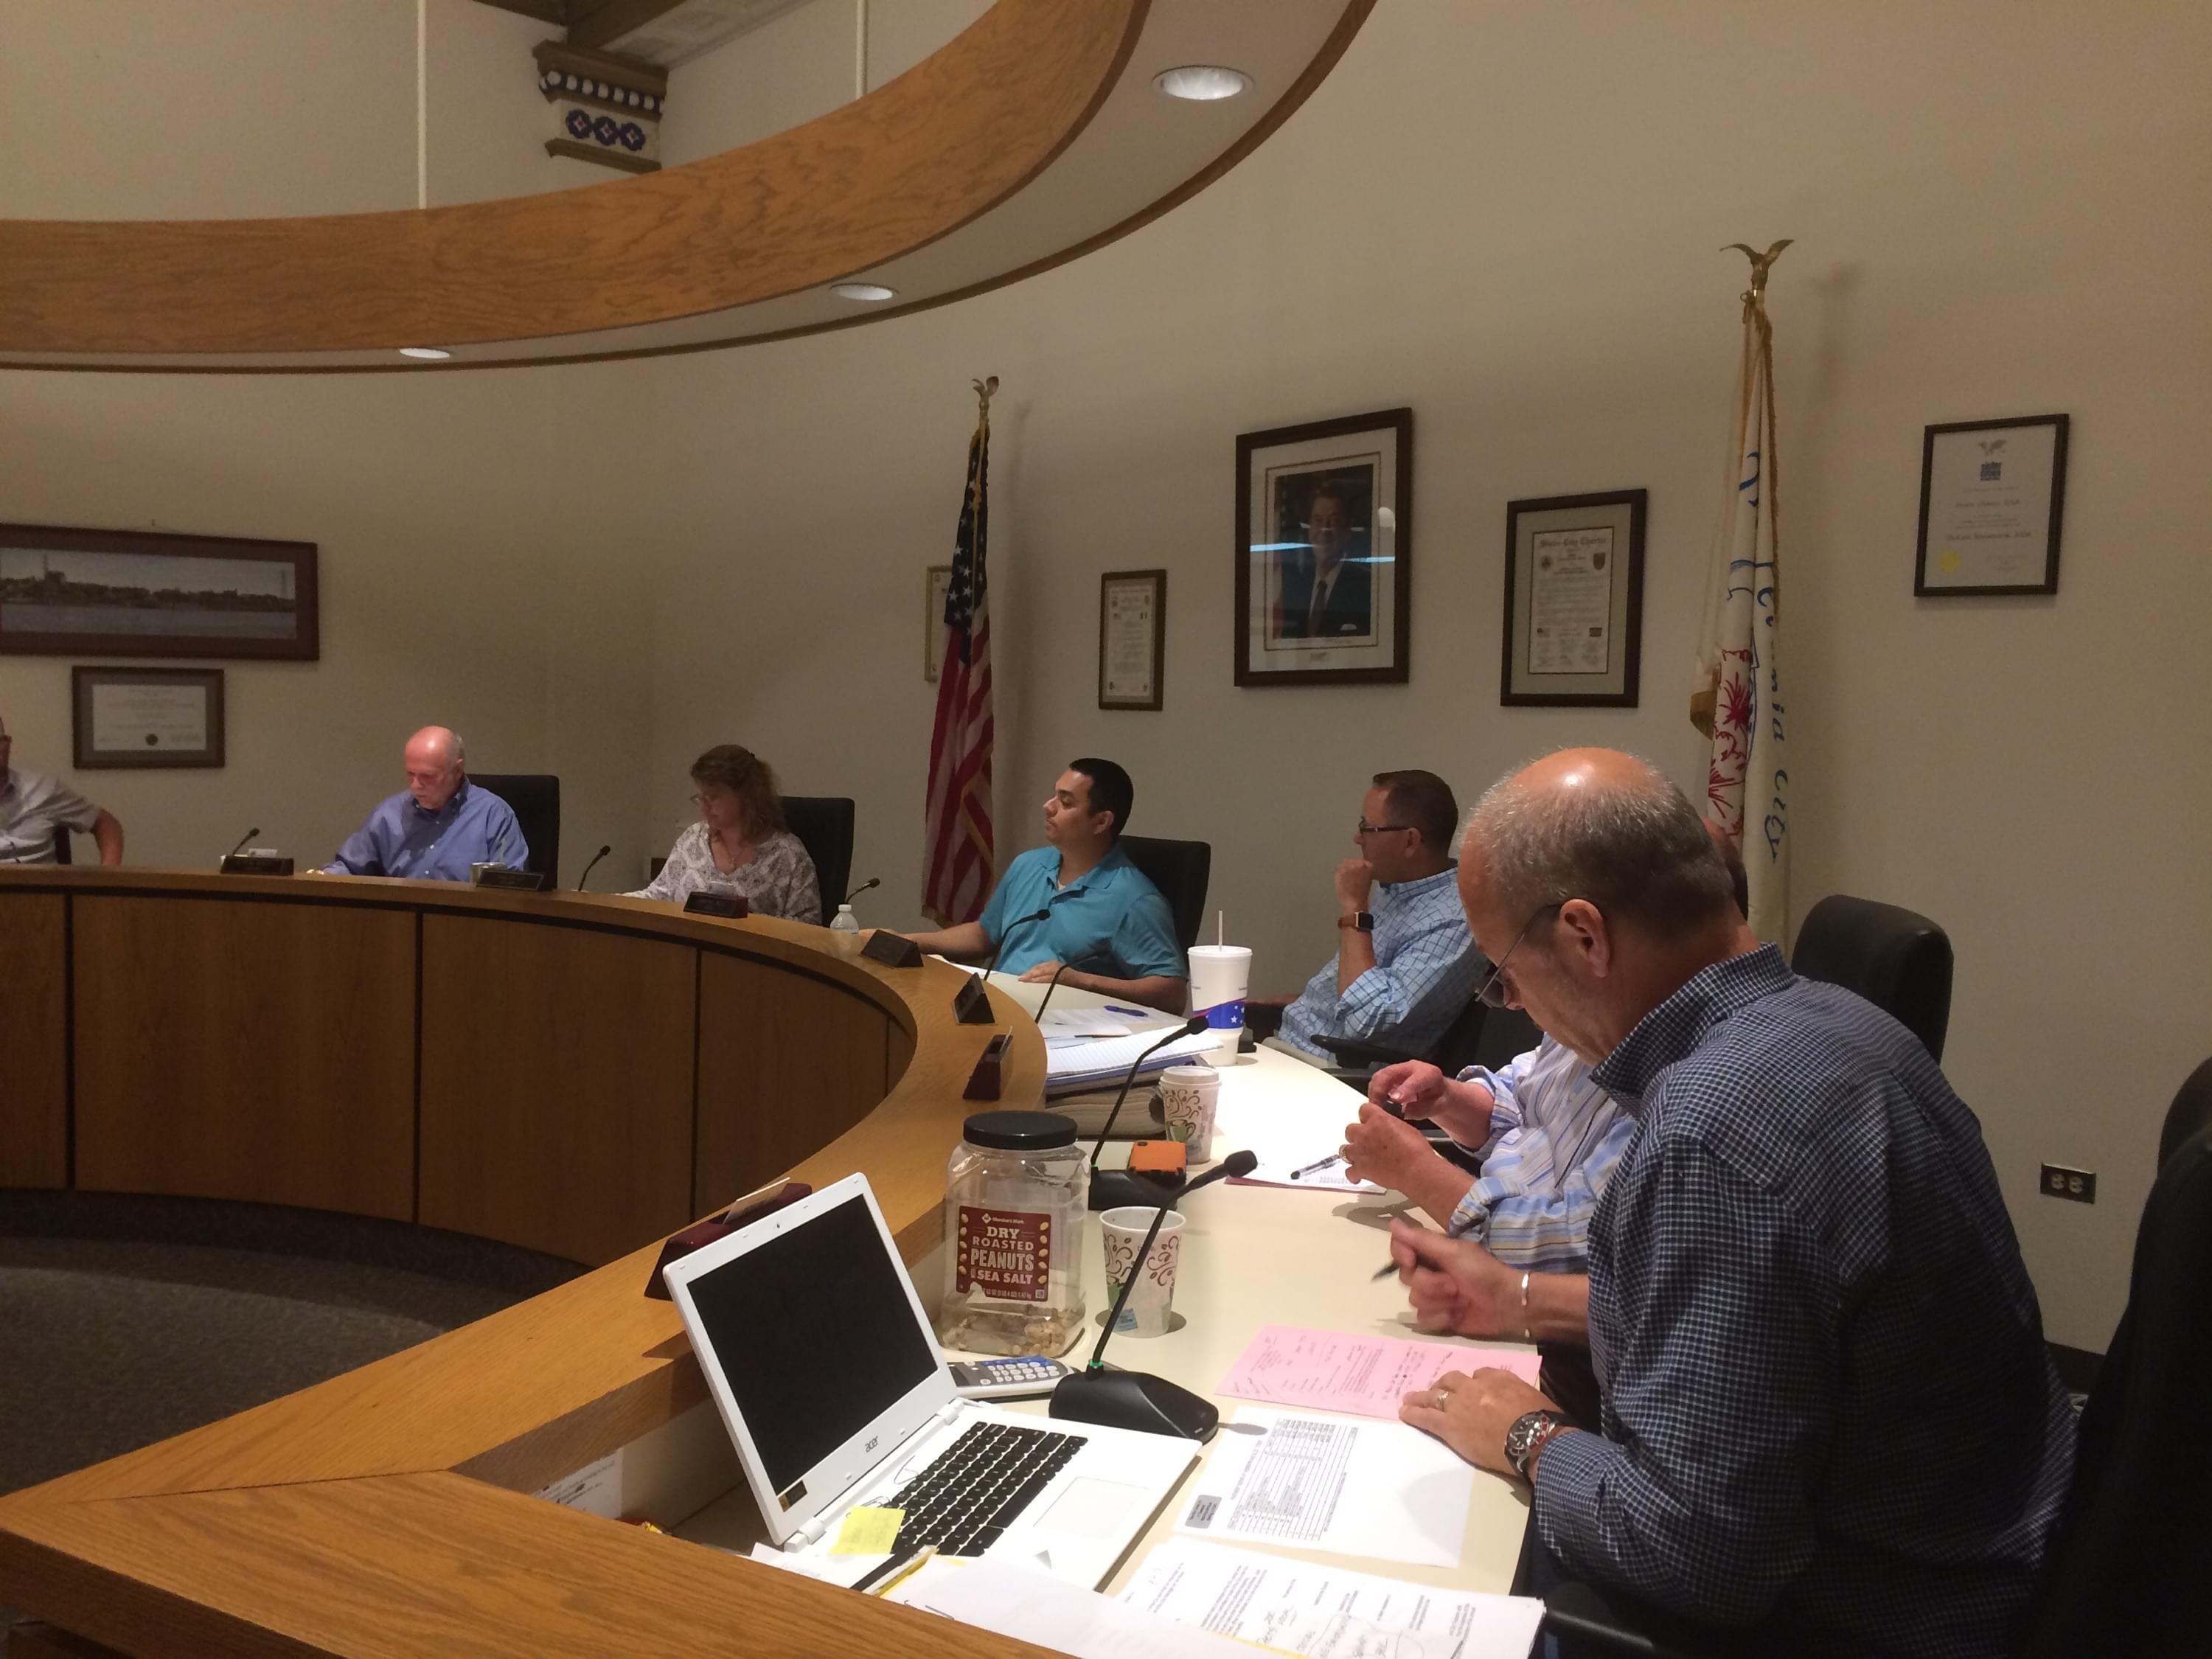 Dixon Council Supports City Manager and Says City Ordinance Followed